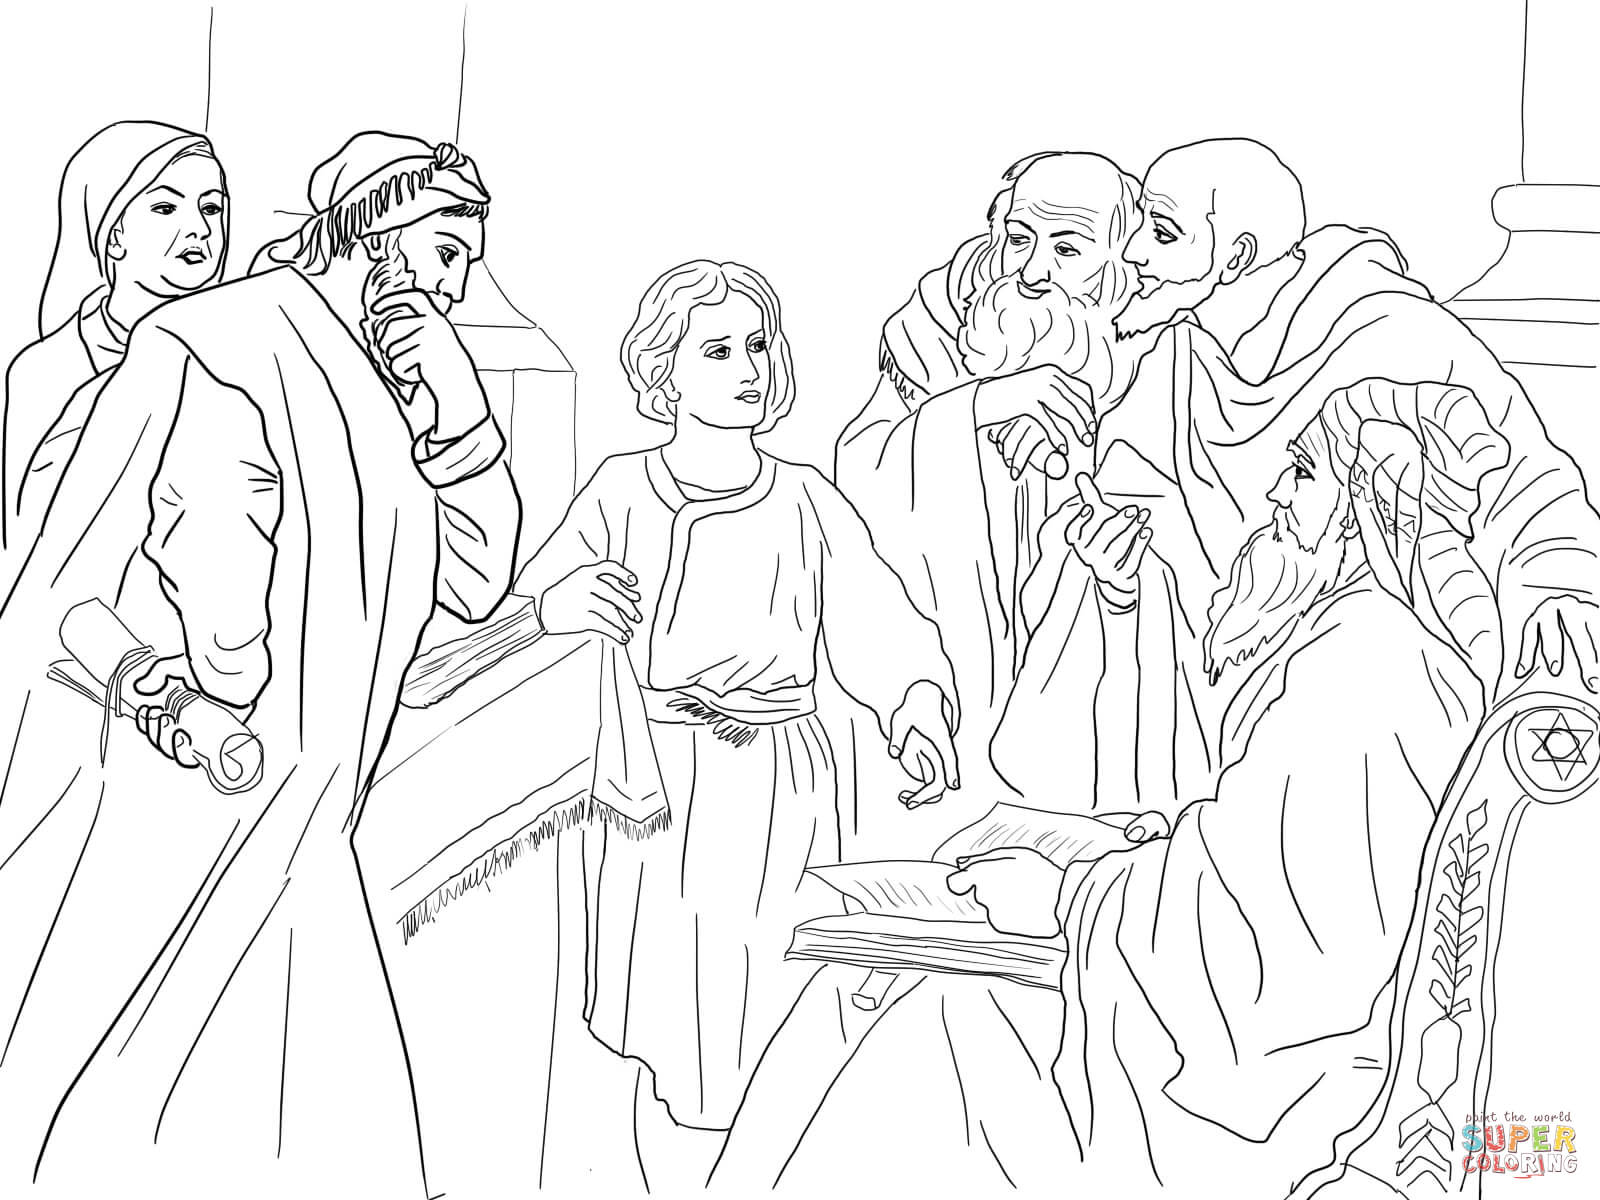 jesus in the temple coloring page boy jesus in the temple coloring page coloring home in the coloring jesus page temple